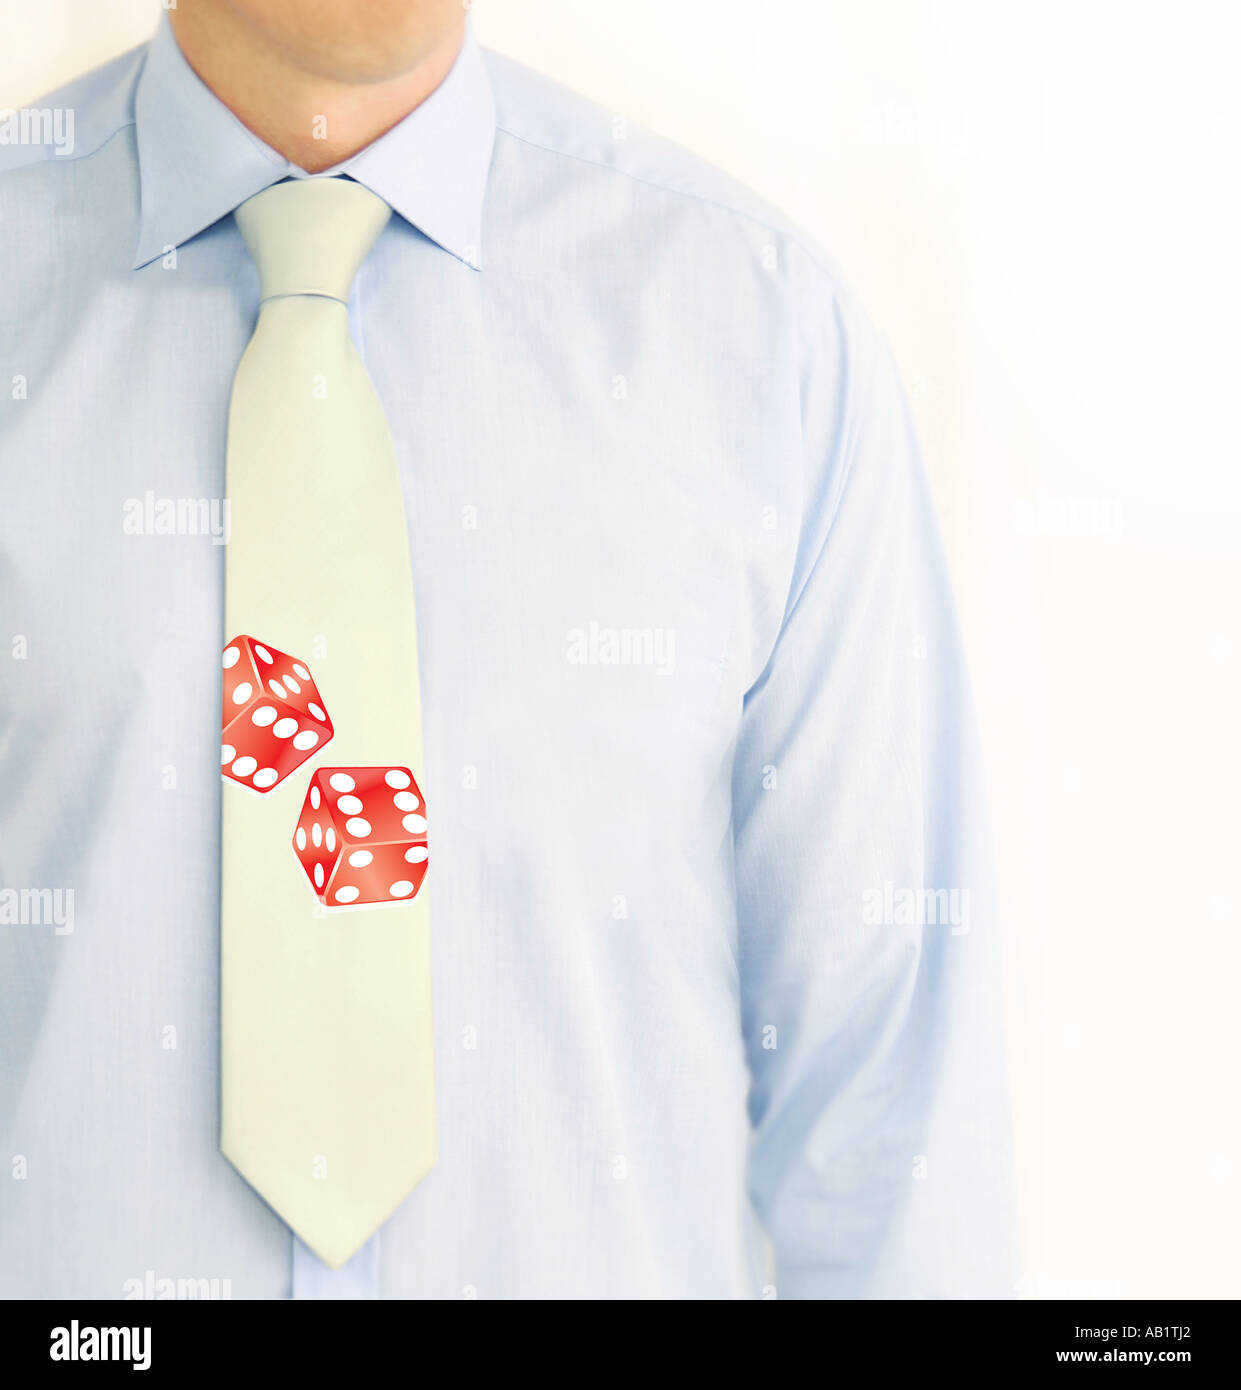 a businessman with dice on his tie - Stock Image